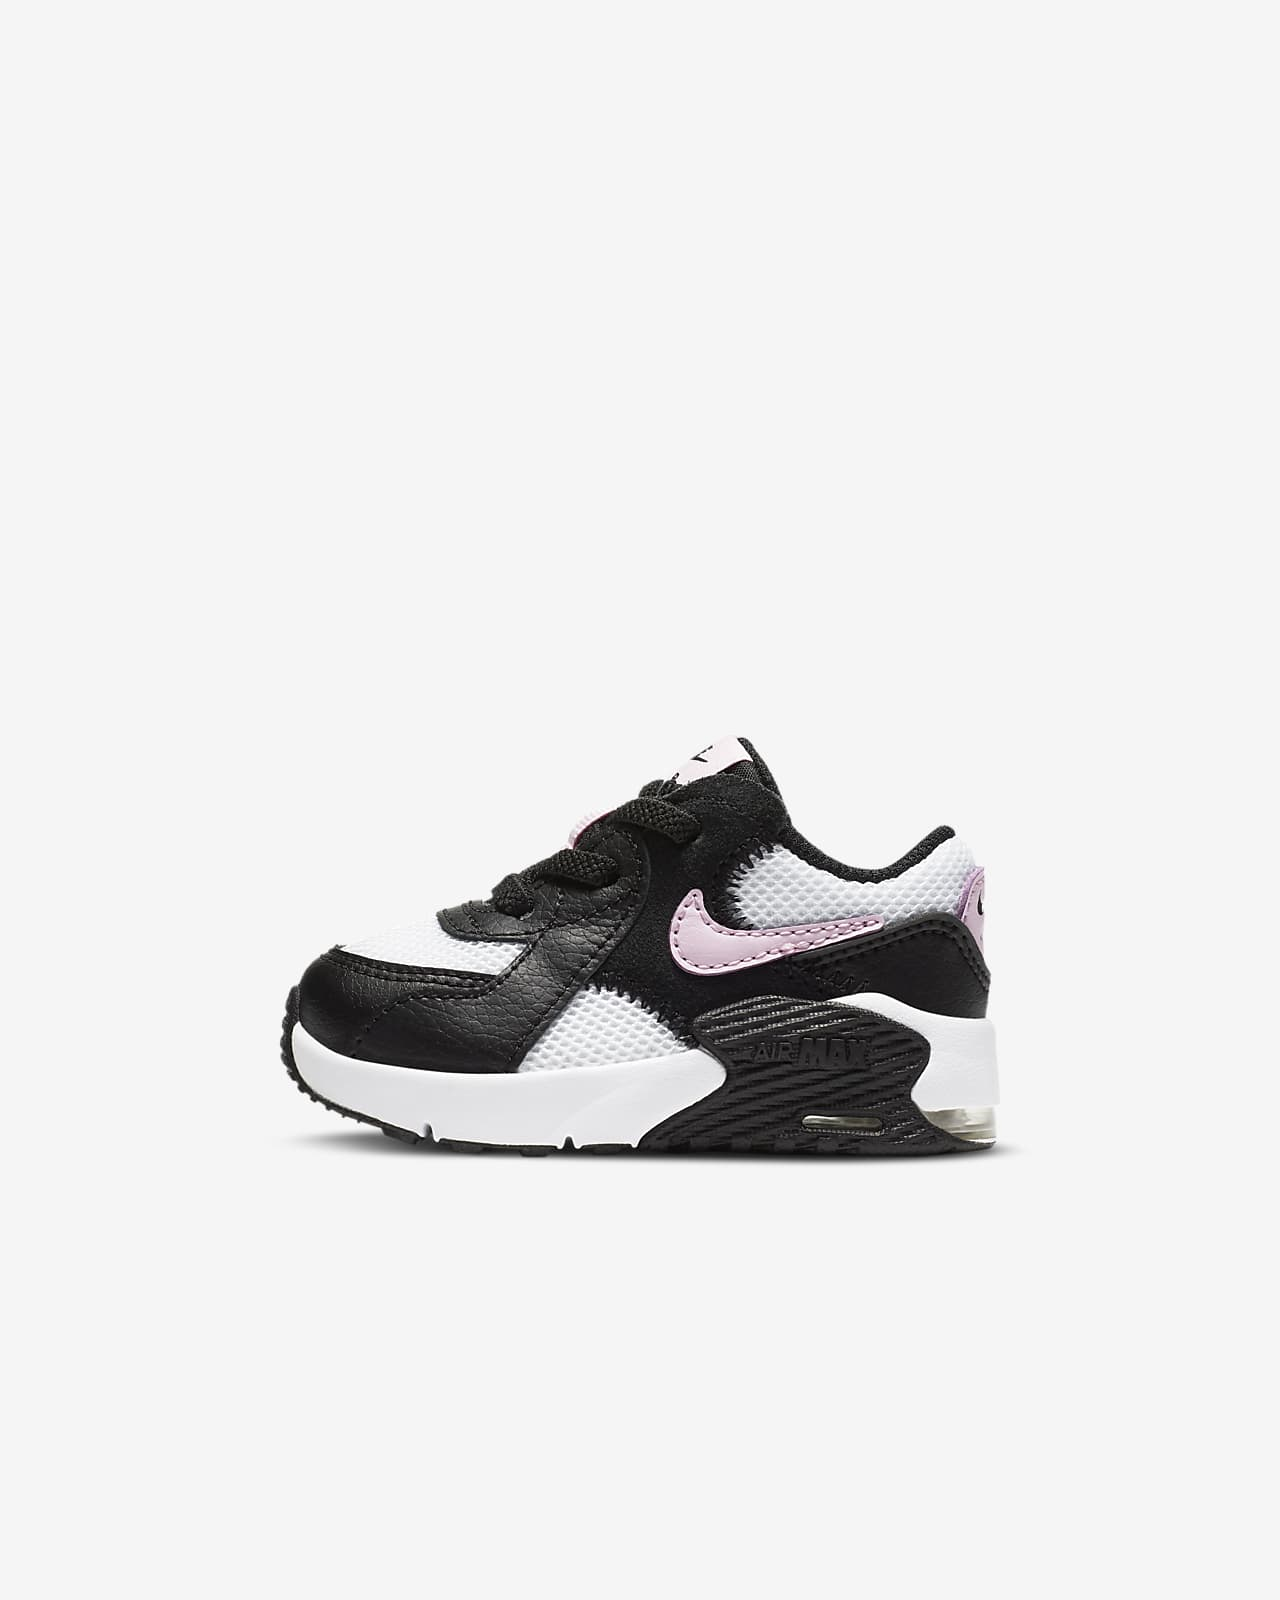 Nike Air Max Excee Baby/Toddler Shoe